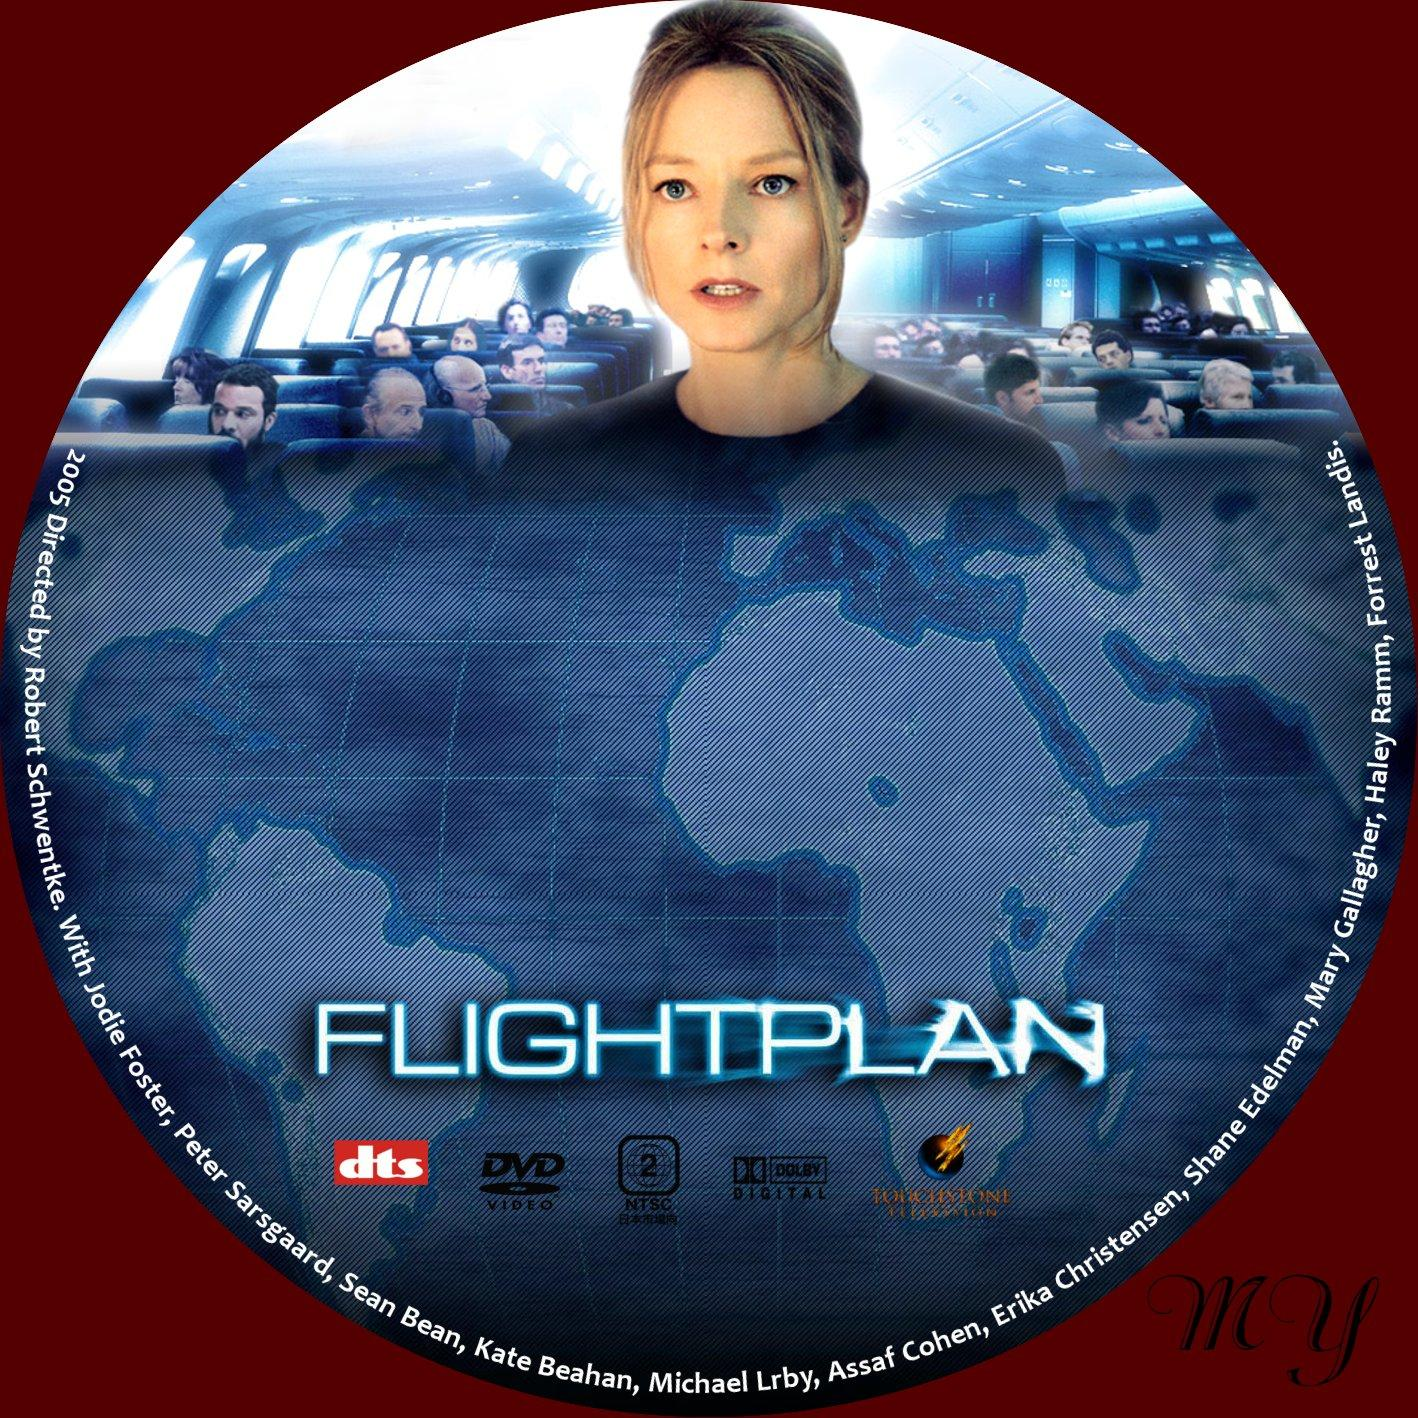 flight plan answer The speed cannot be adjusted in flight plan the fact you can modify the speed in flight plan is a bug with no effect on speed.